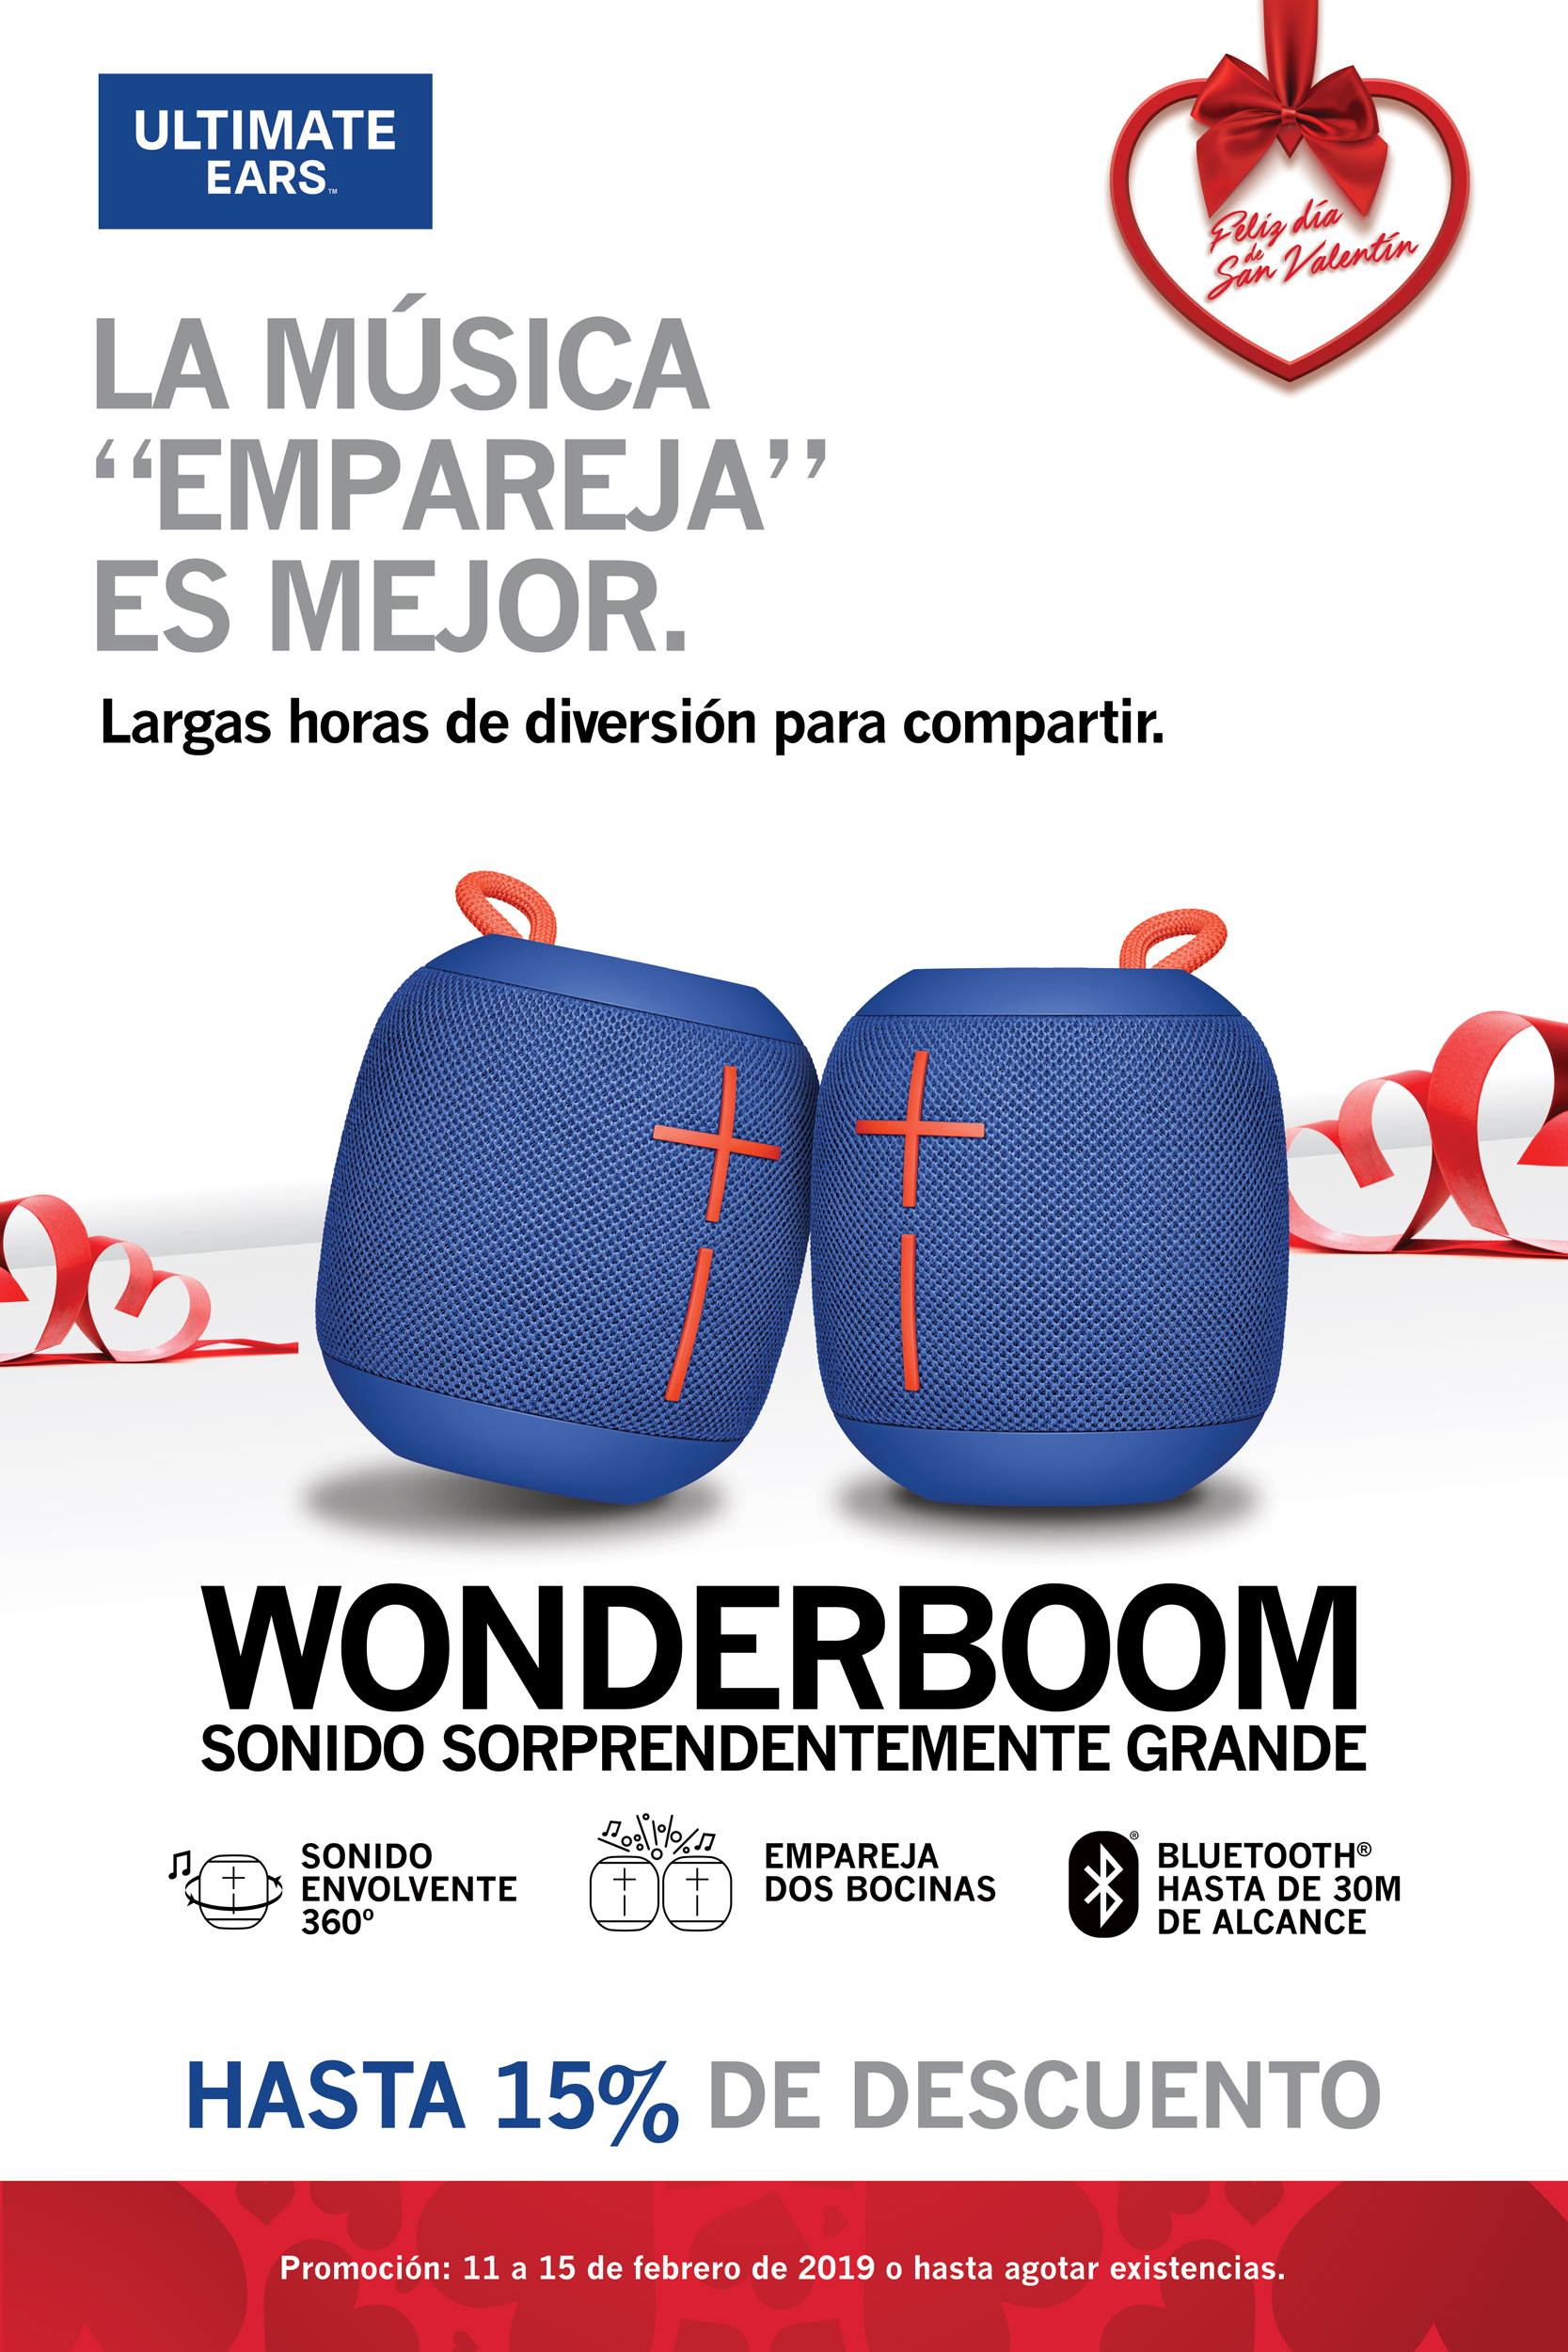 Promo Wonderboom azul - Bocinas portátiles - Ultimate Ears